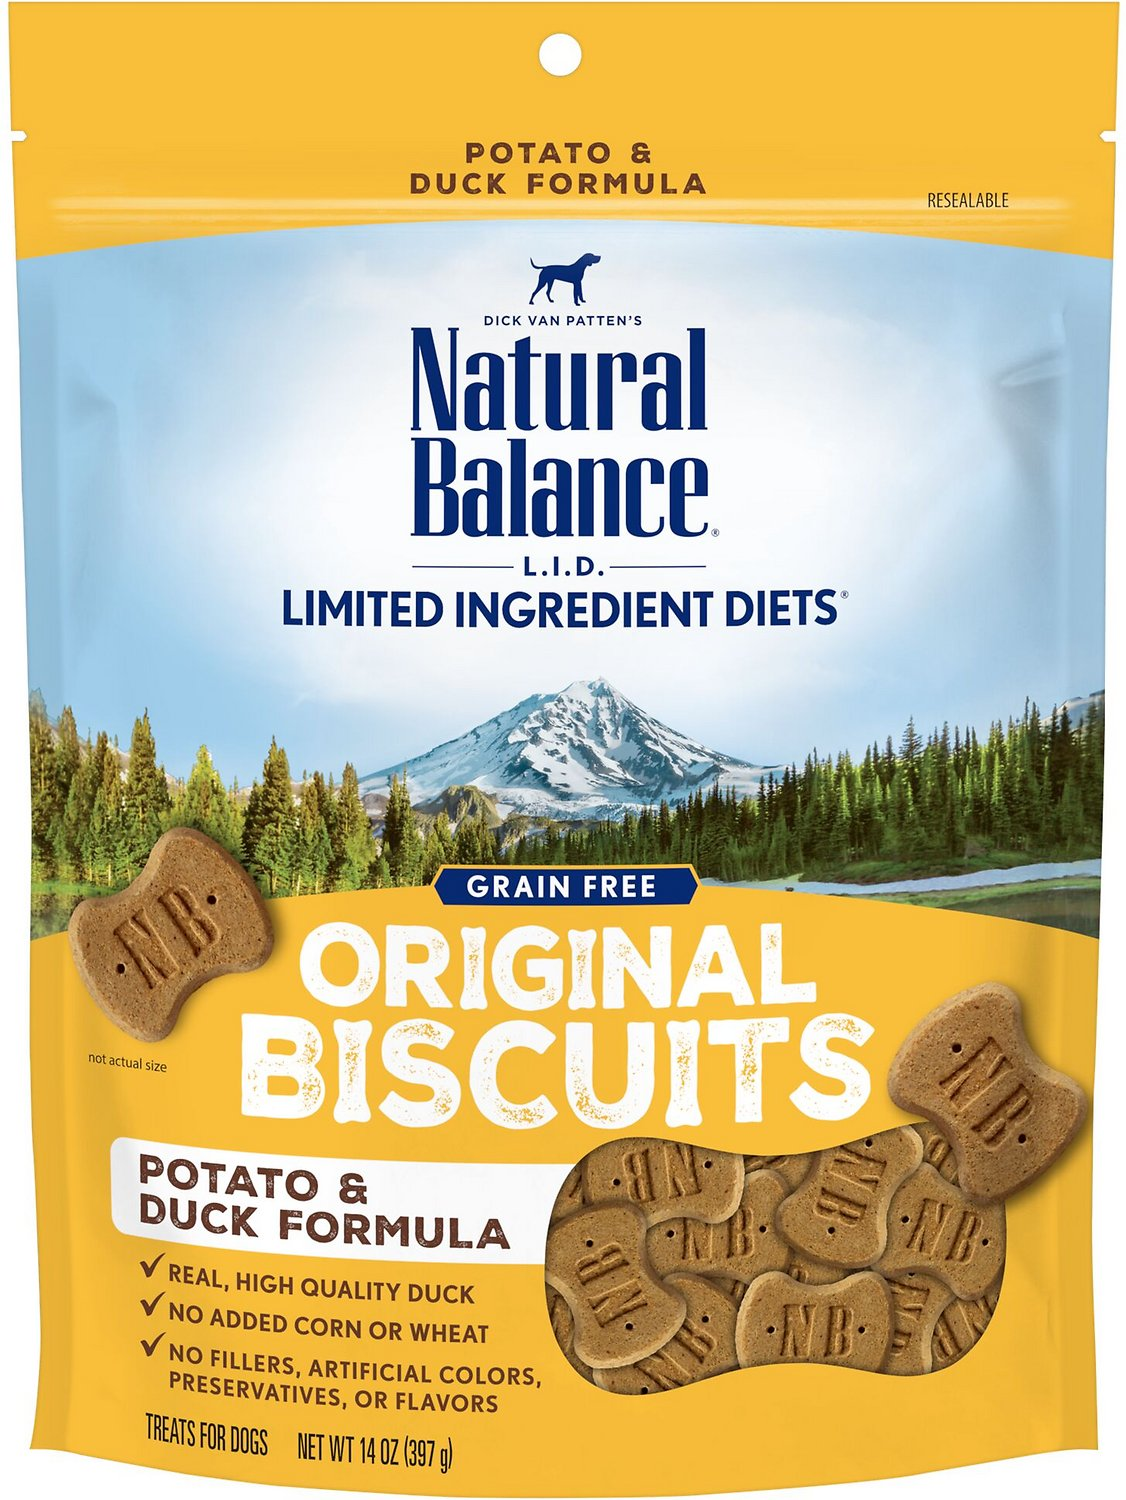 Natural Balance Lit Dog Treats Reviews